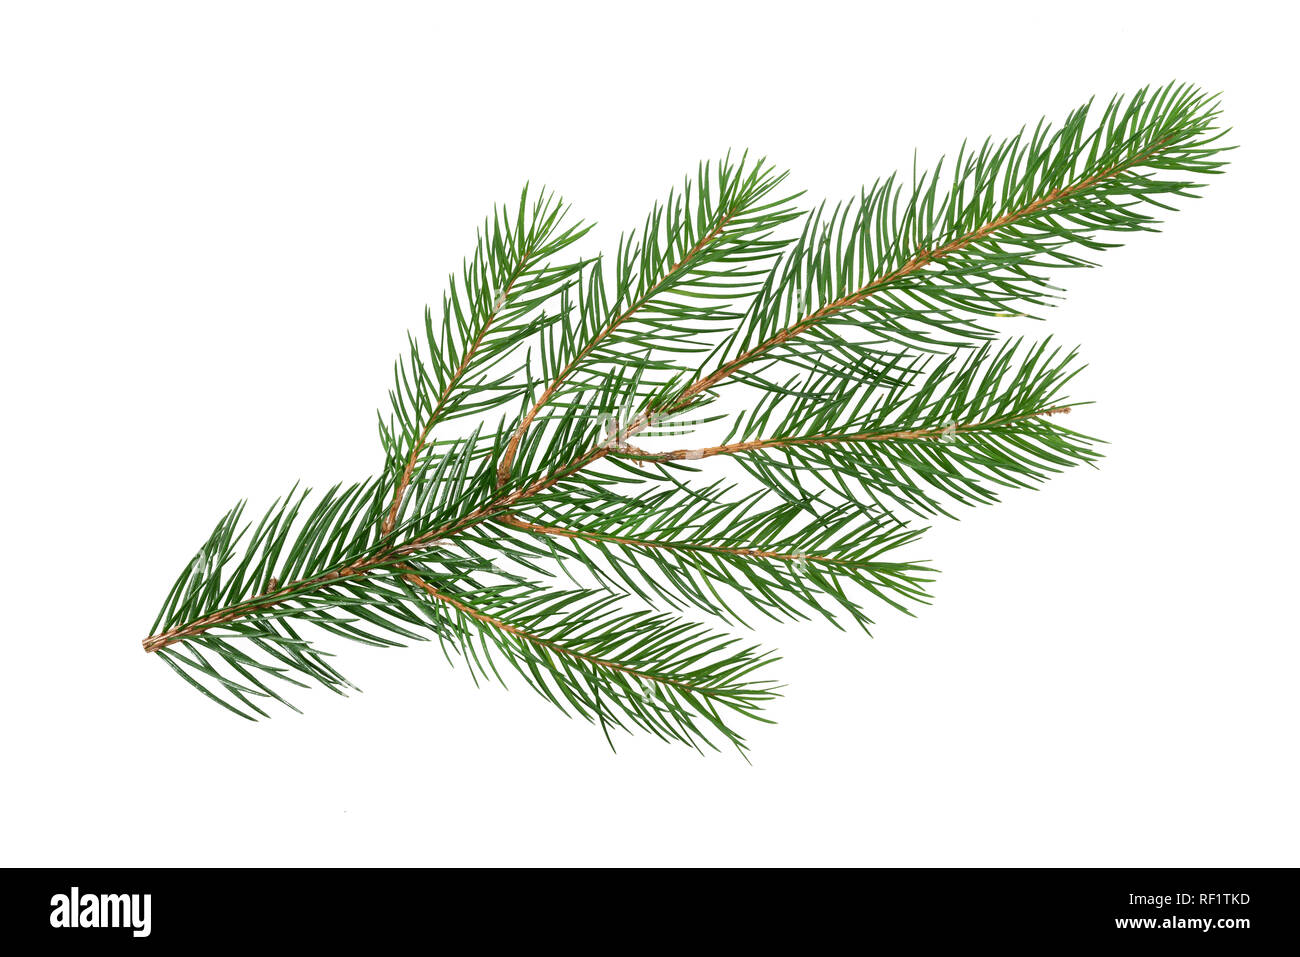 Perfect spruce branch isolated on a white background in close-up (high details) - Stock Image